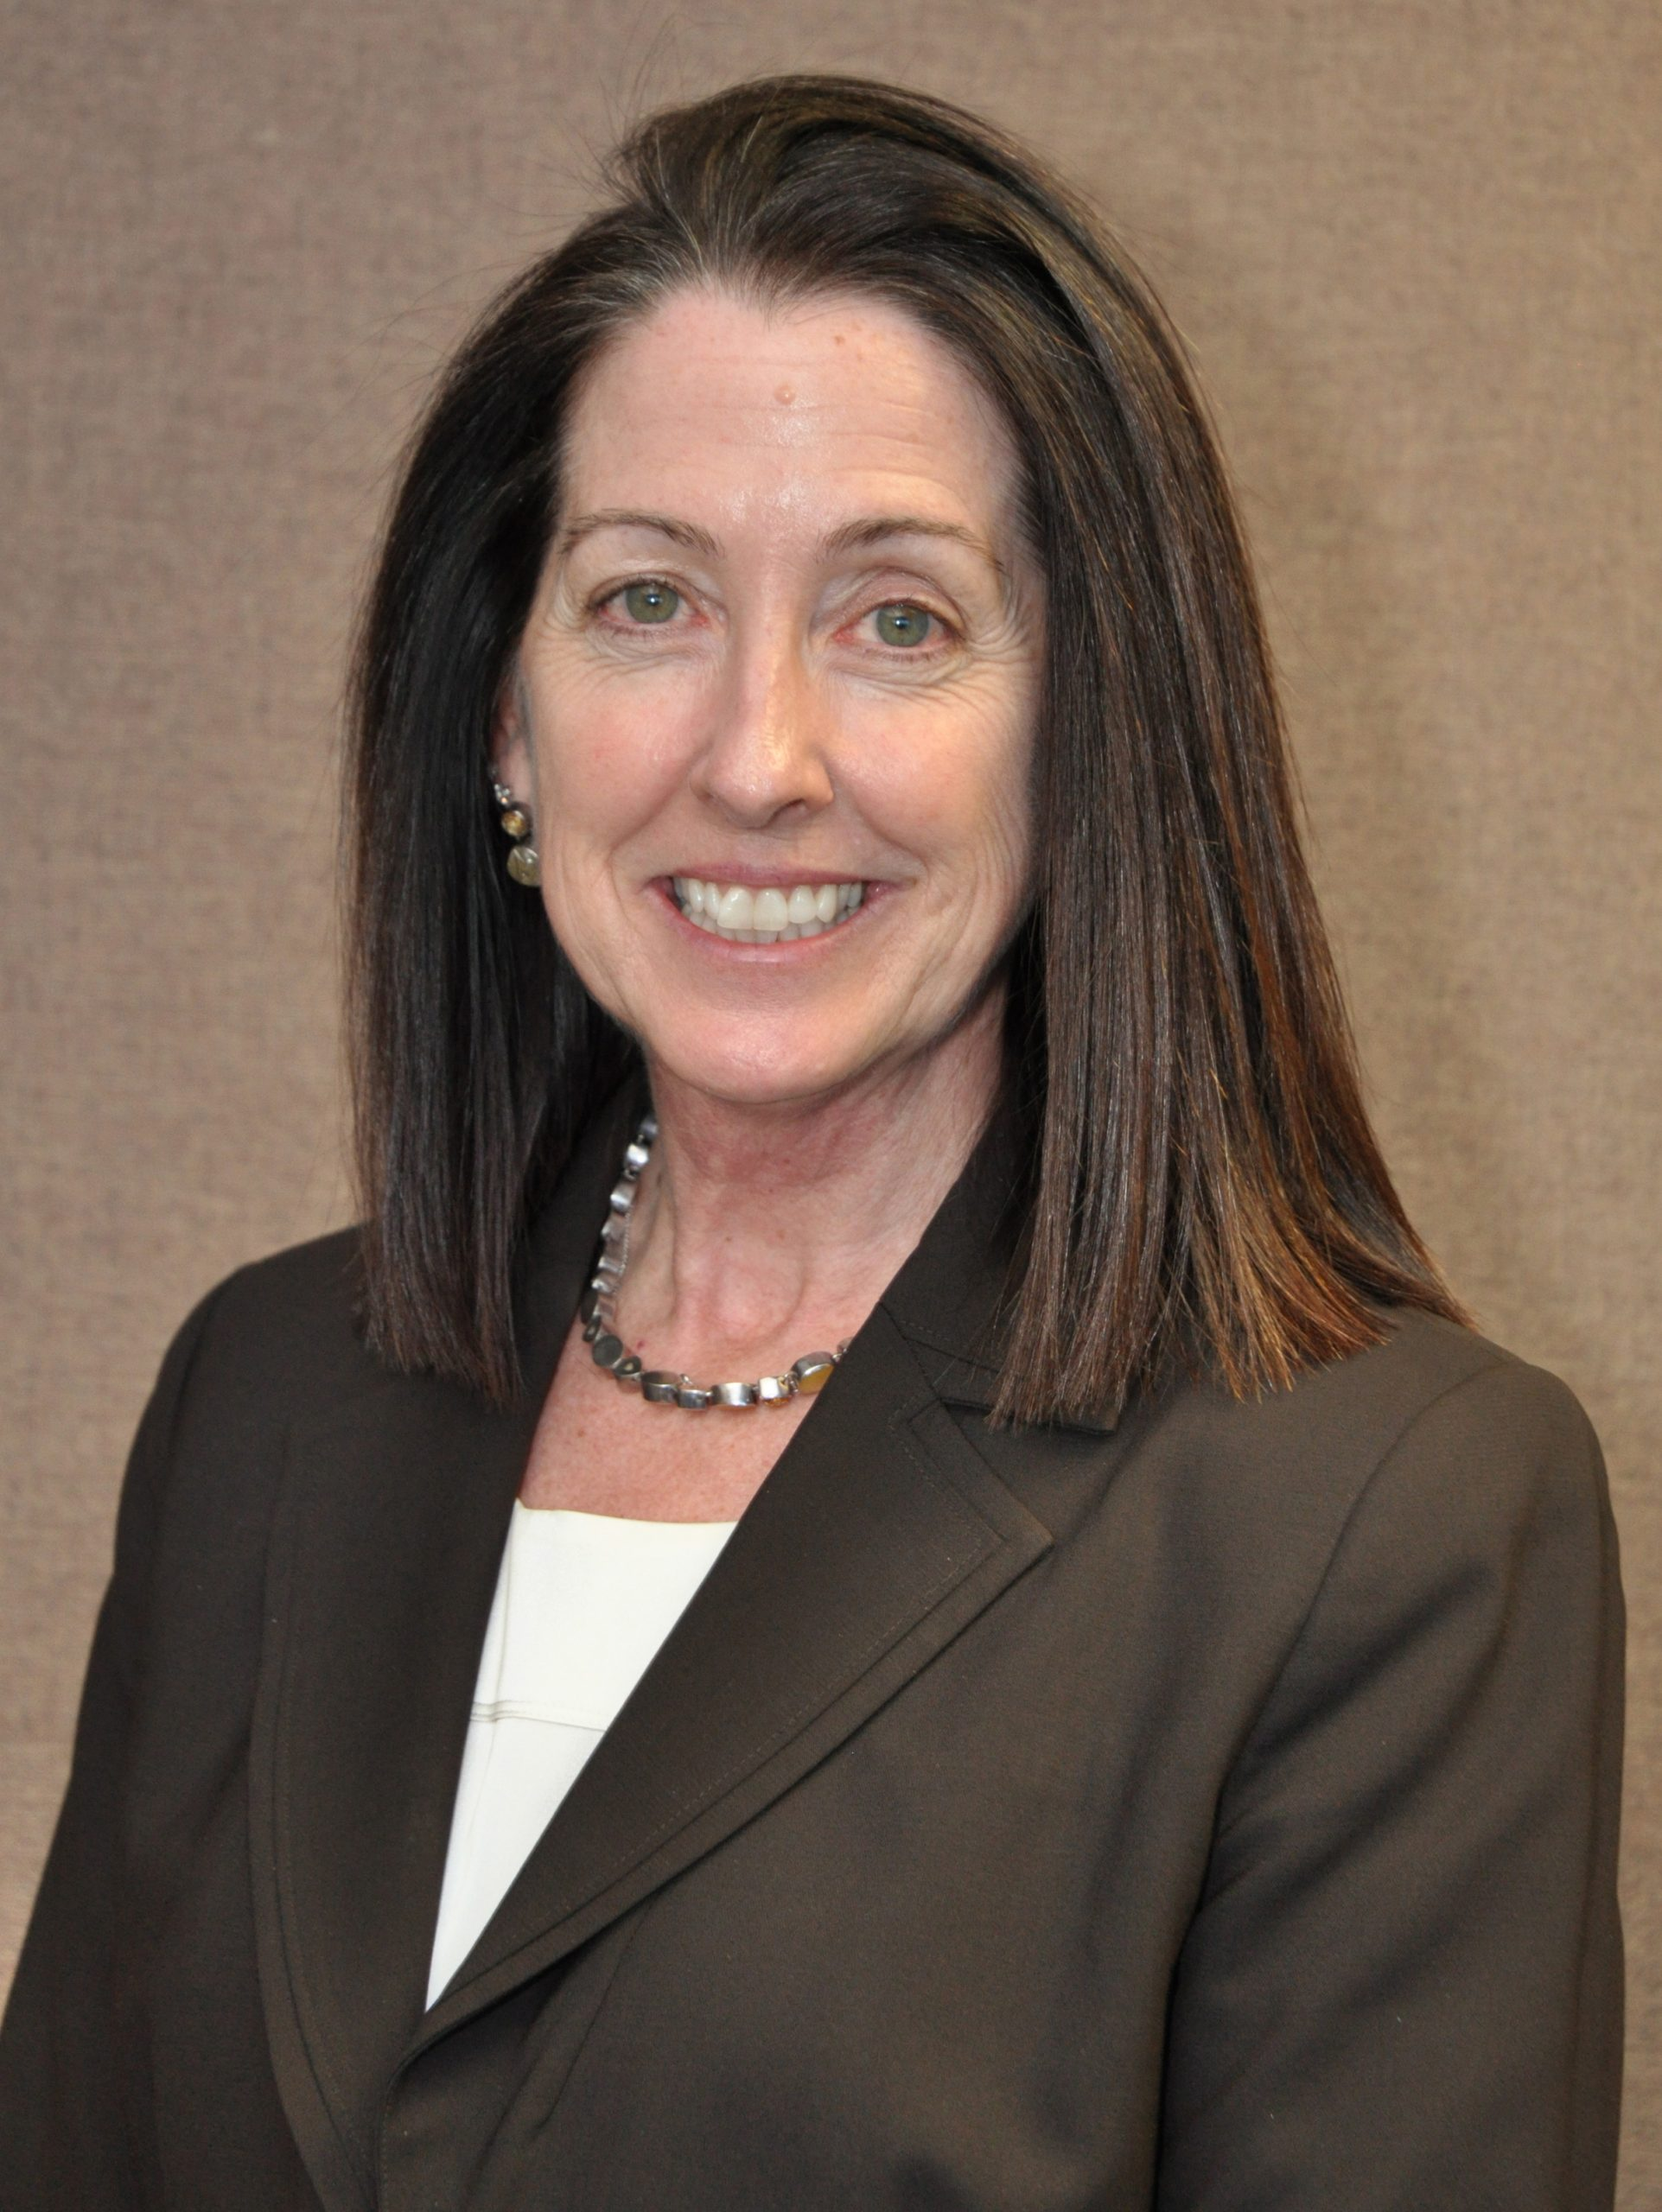 Mary Wagner, associate chief of the U.S Forest Service will speak about challenges of conservation.